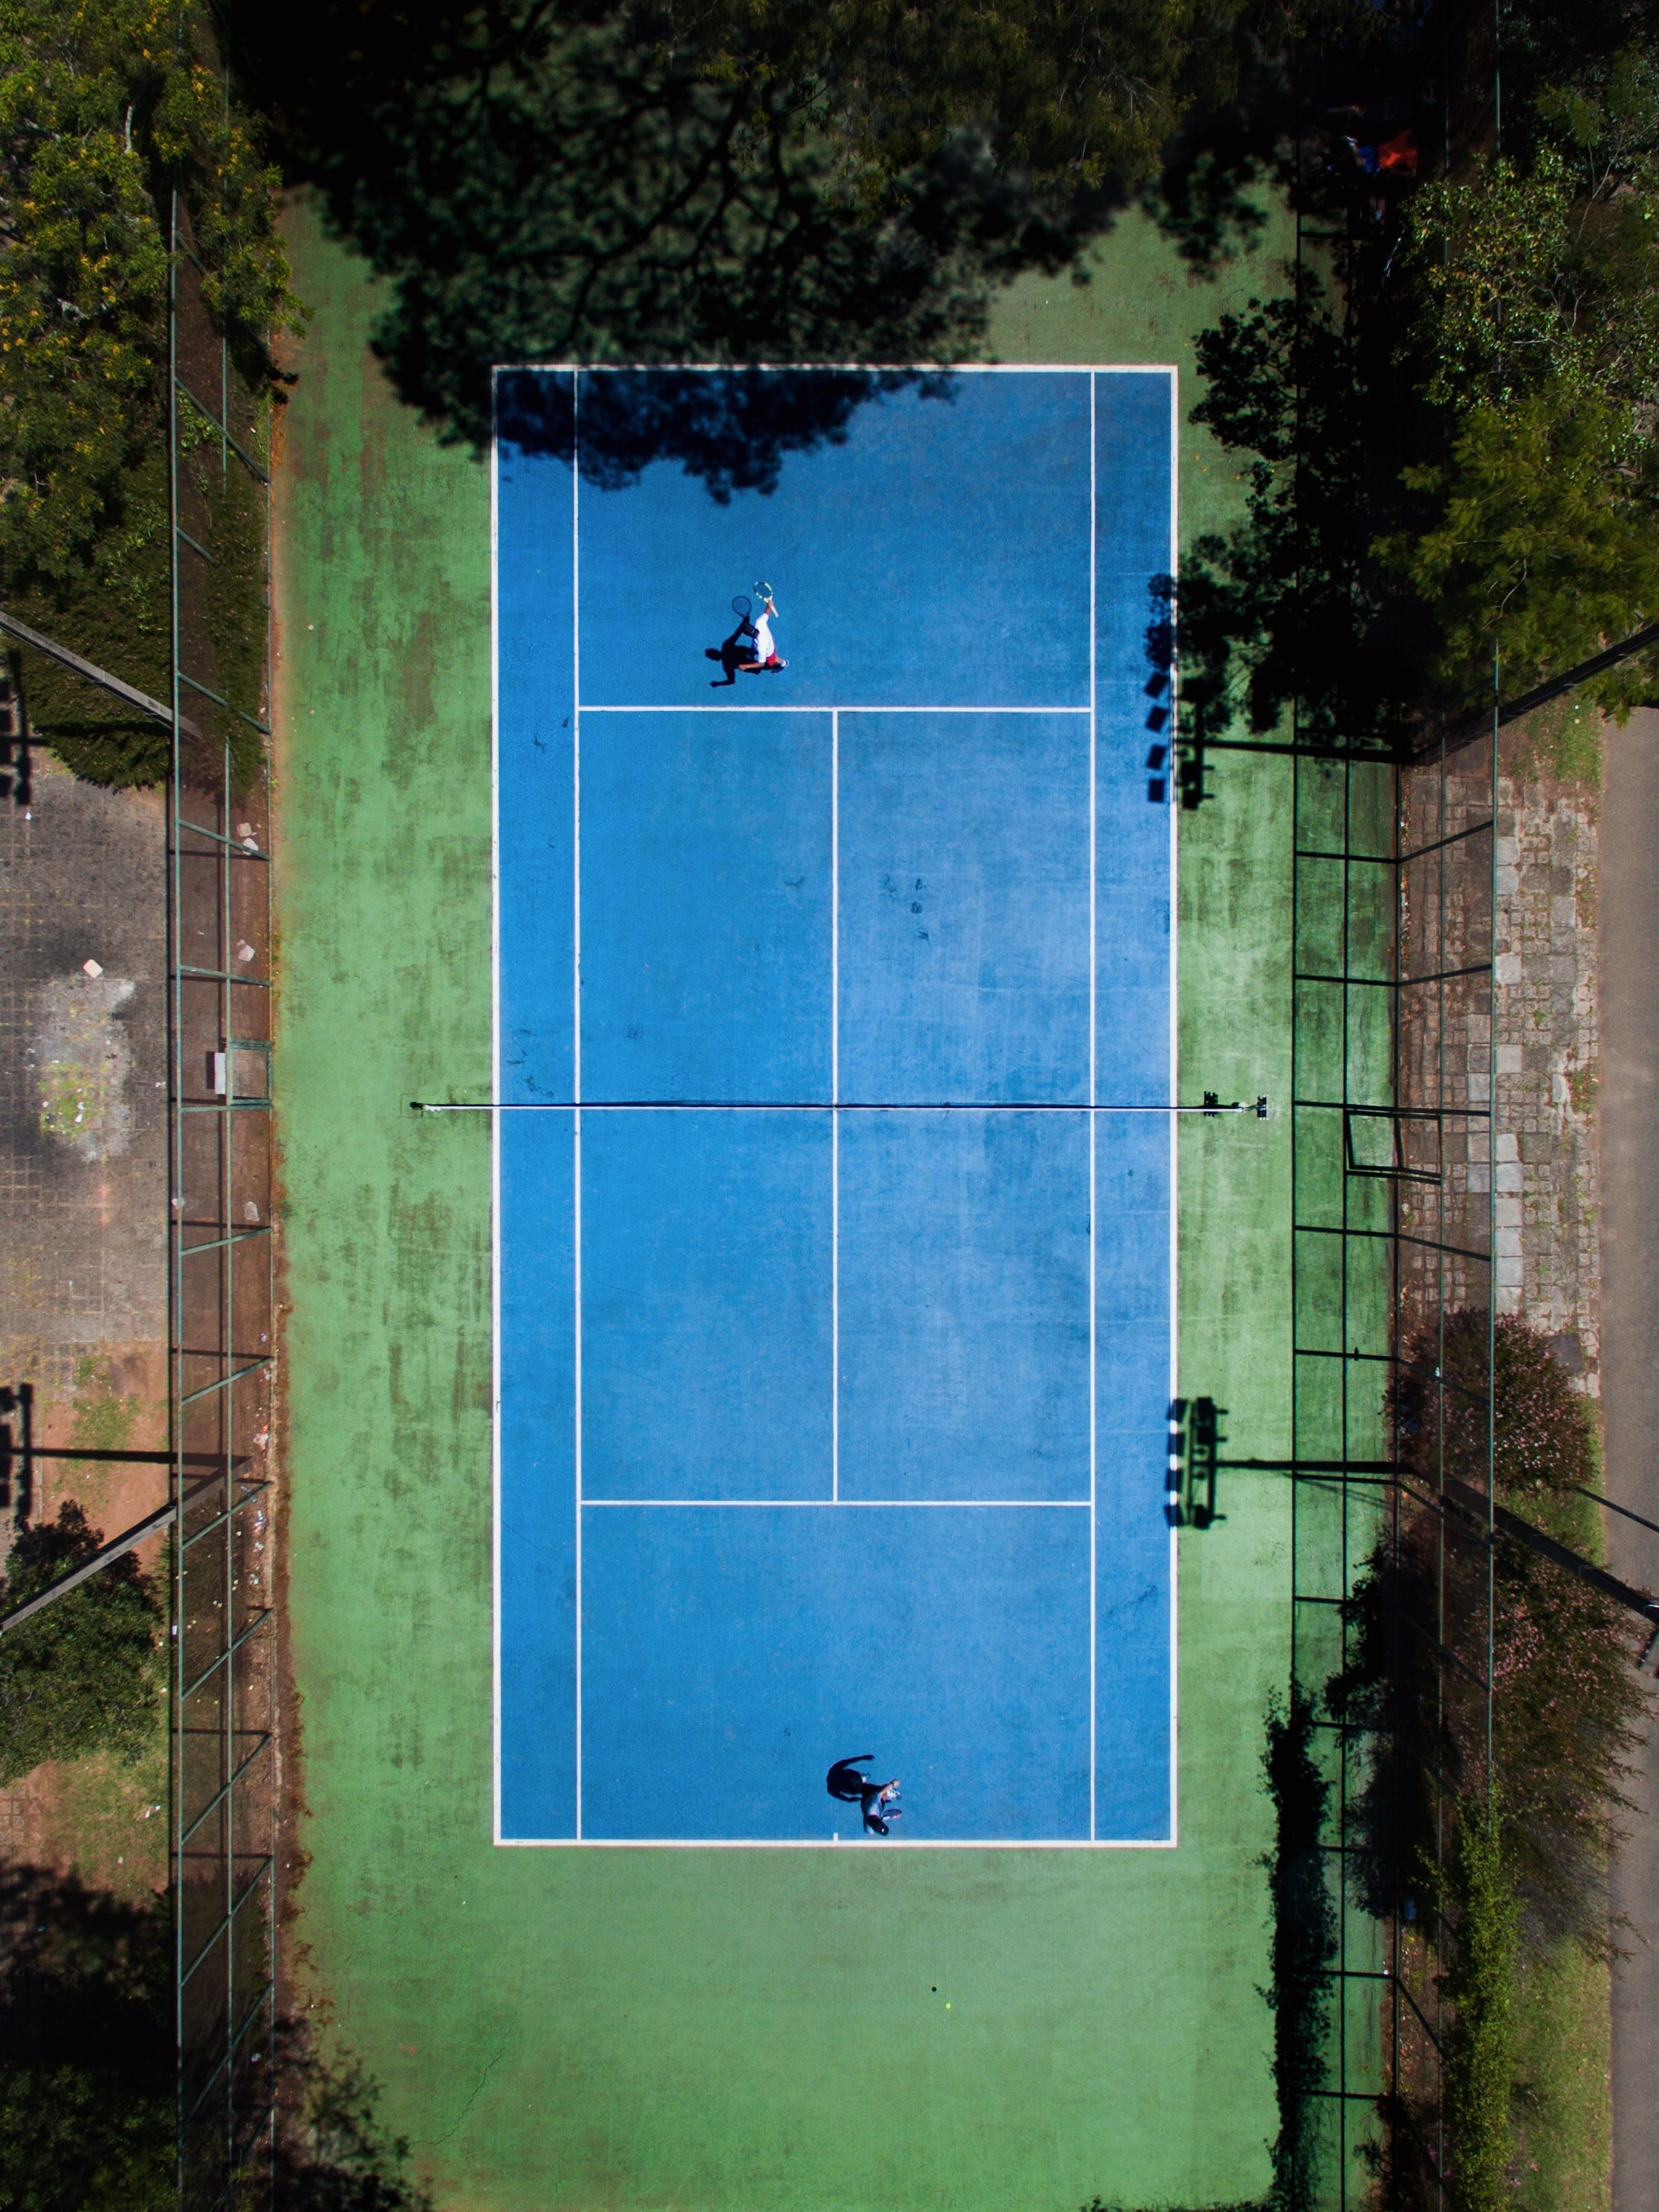 two men playing tennis